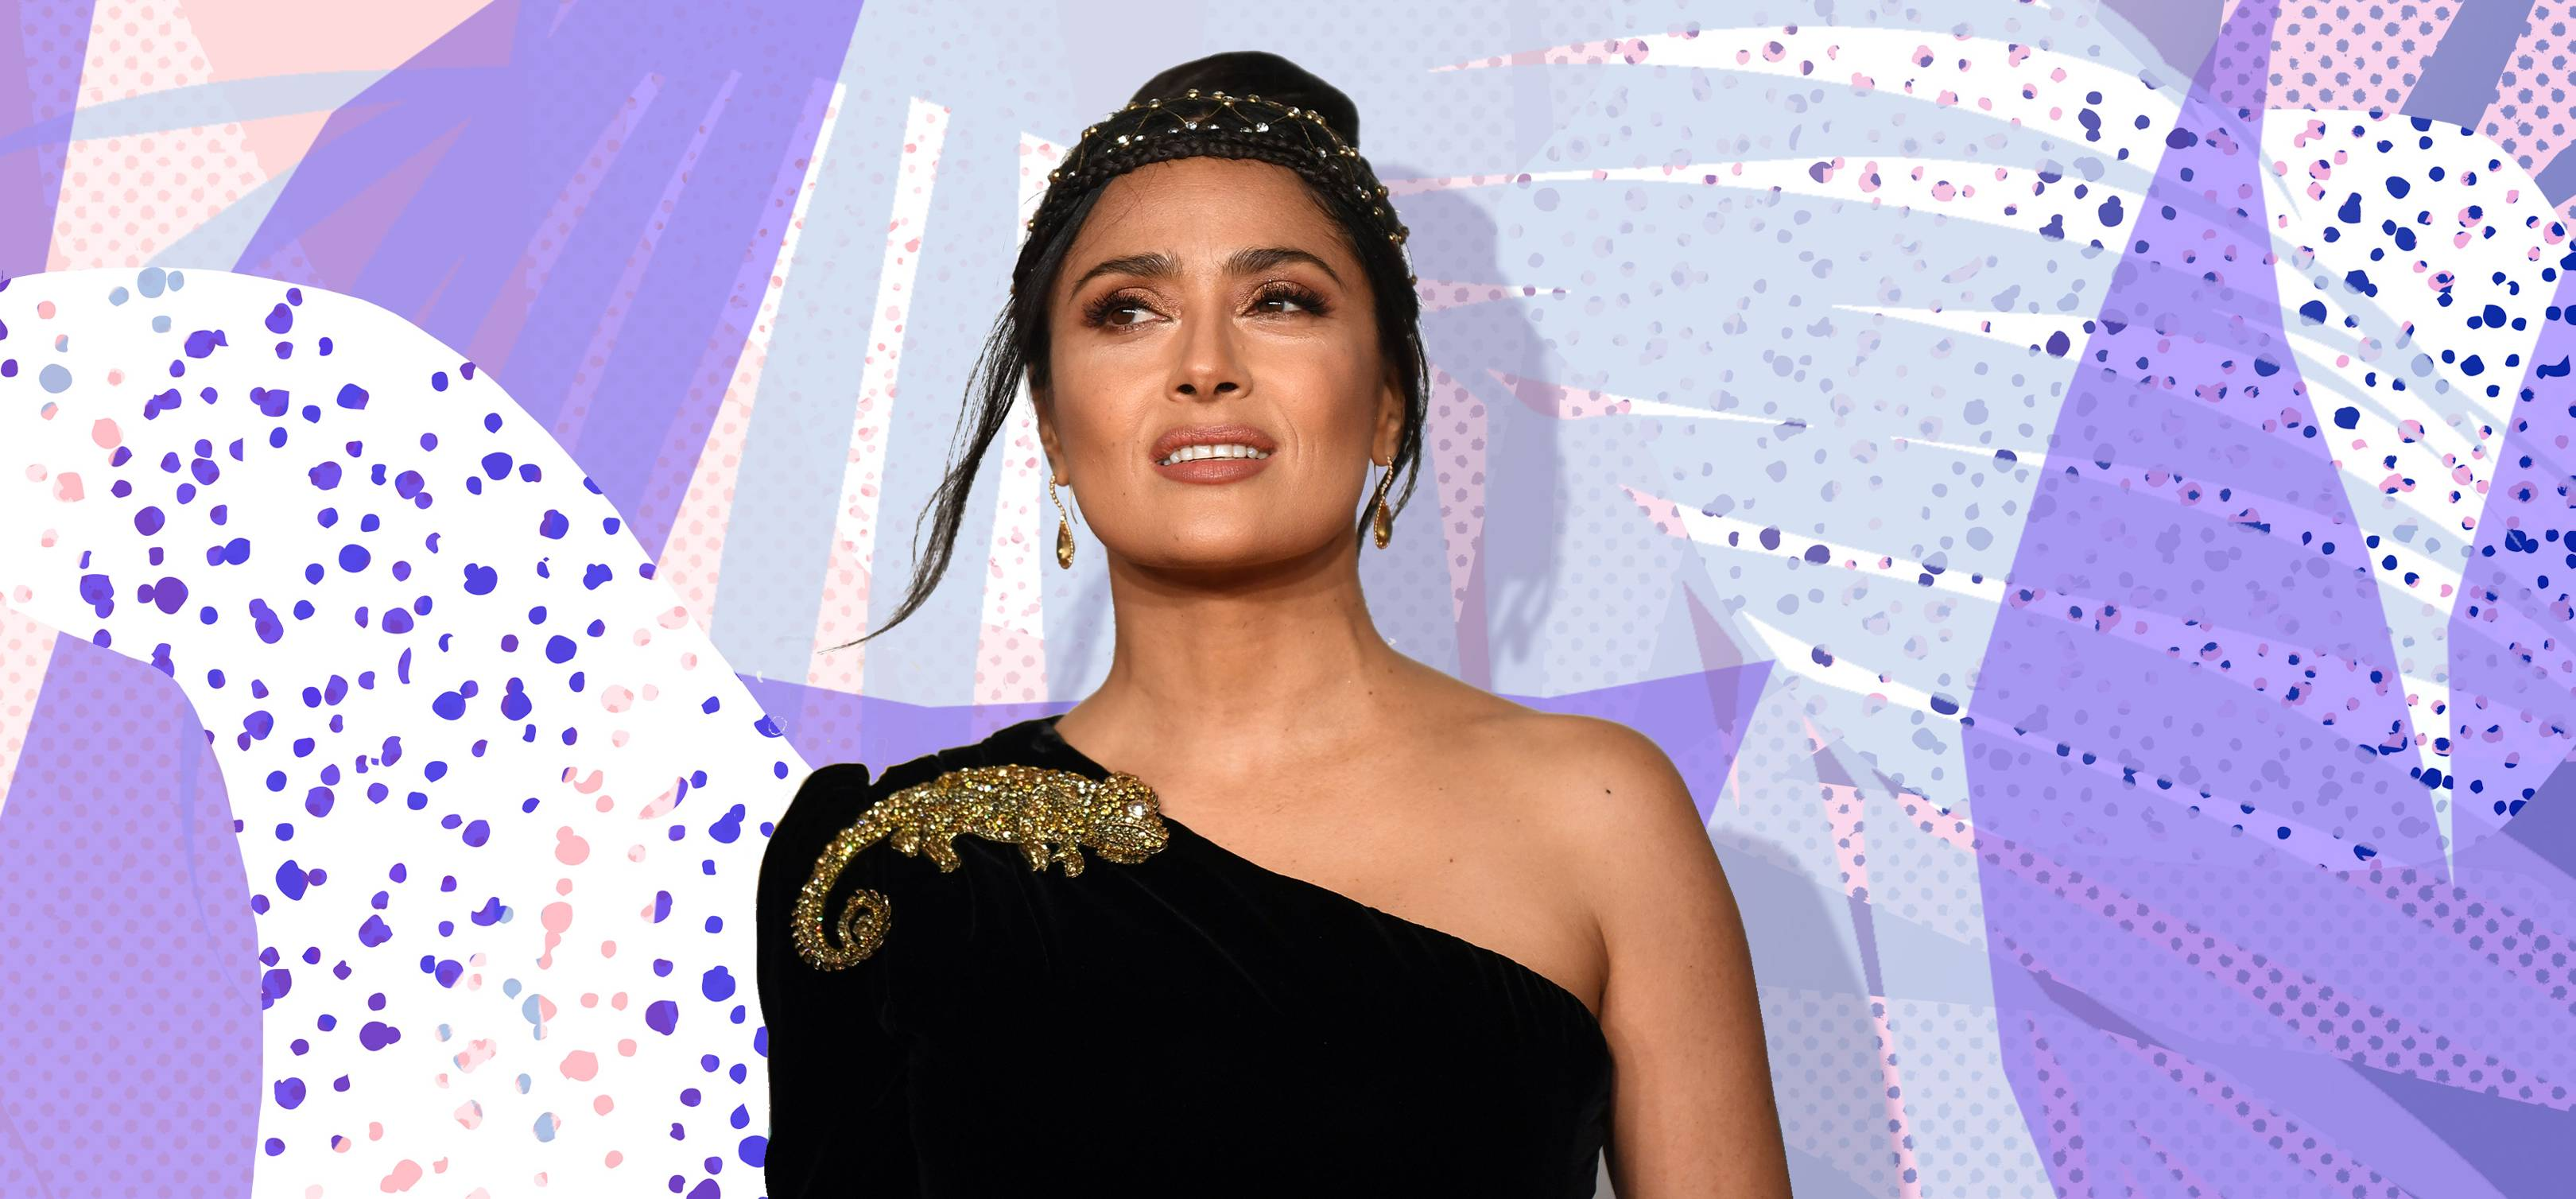 I Tried The Red Carpet Facialist From Salma Hayek's Facialist